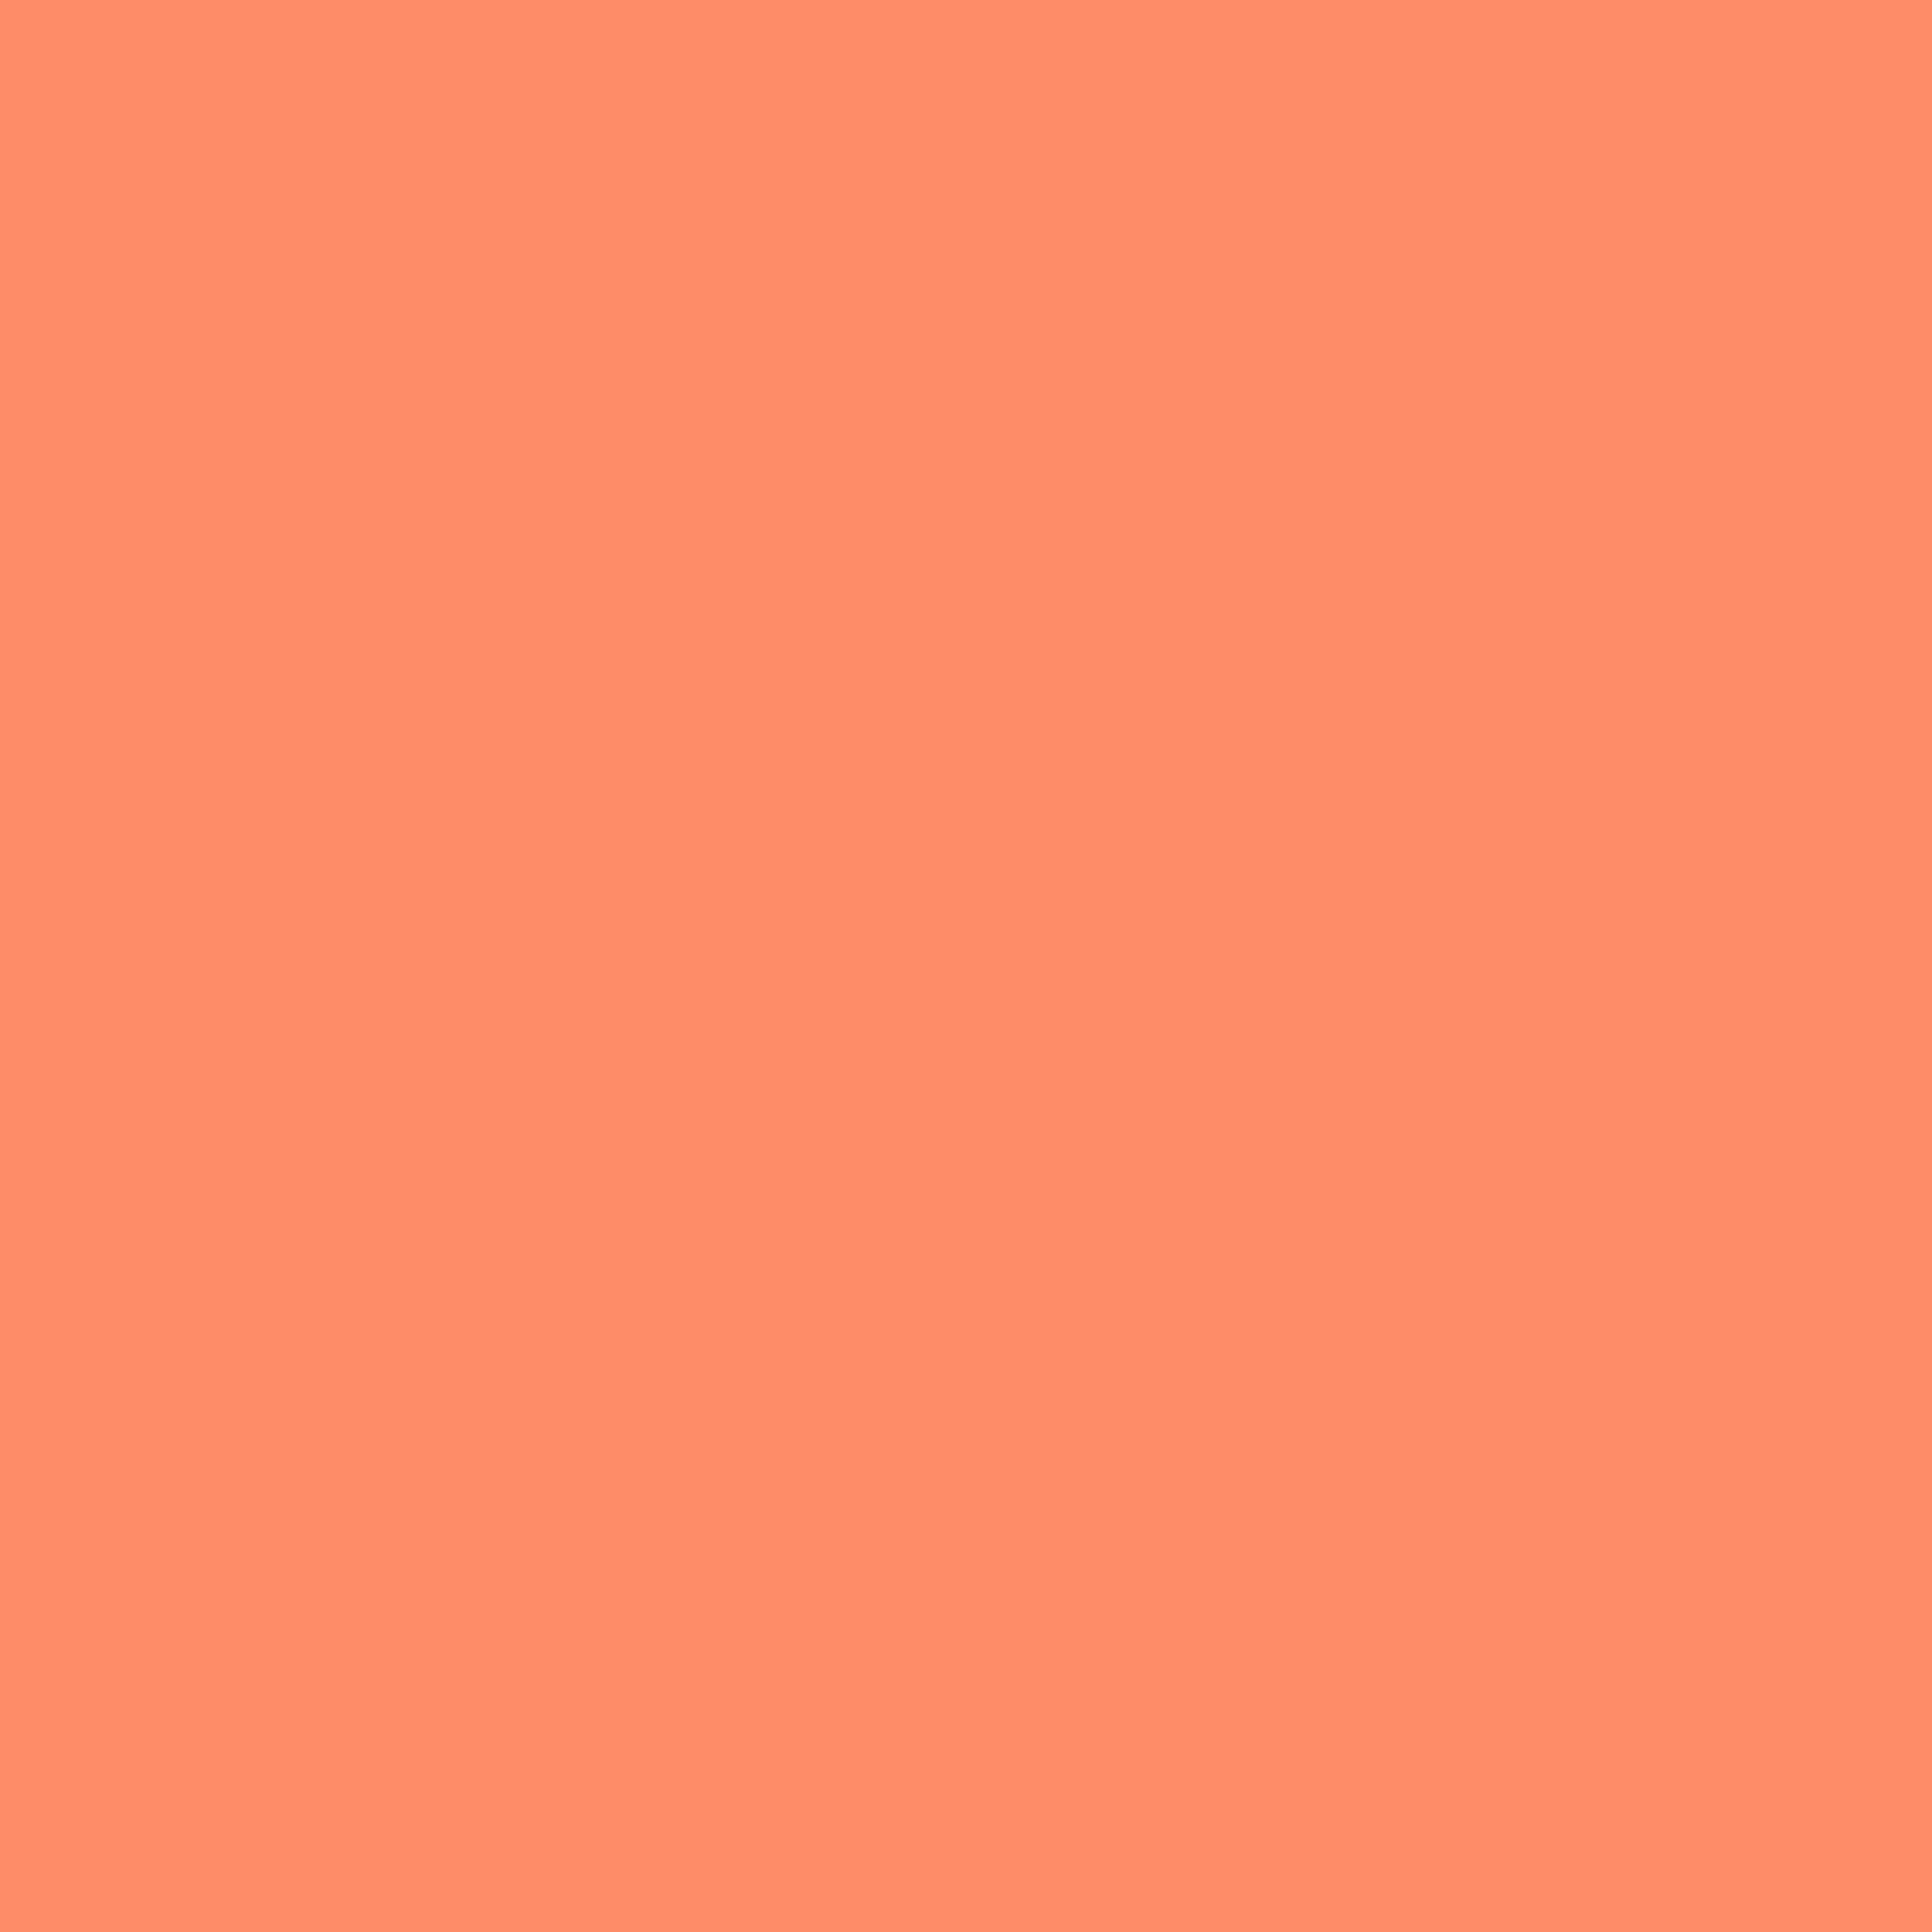 3600x3600 Salmon Solid Color Background